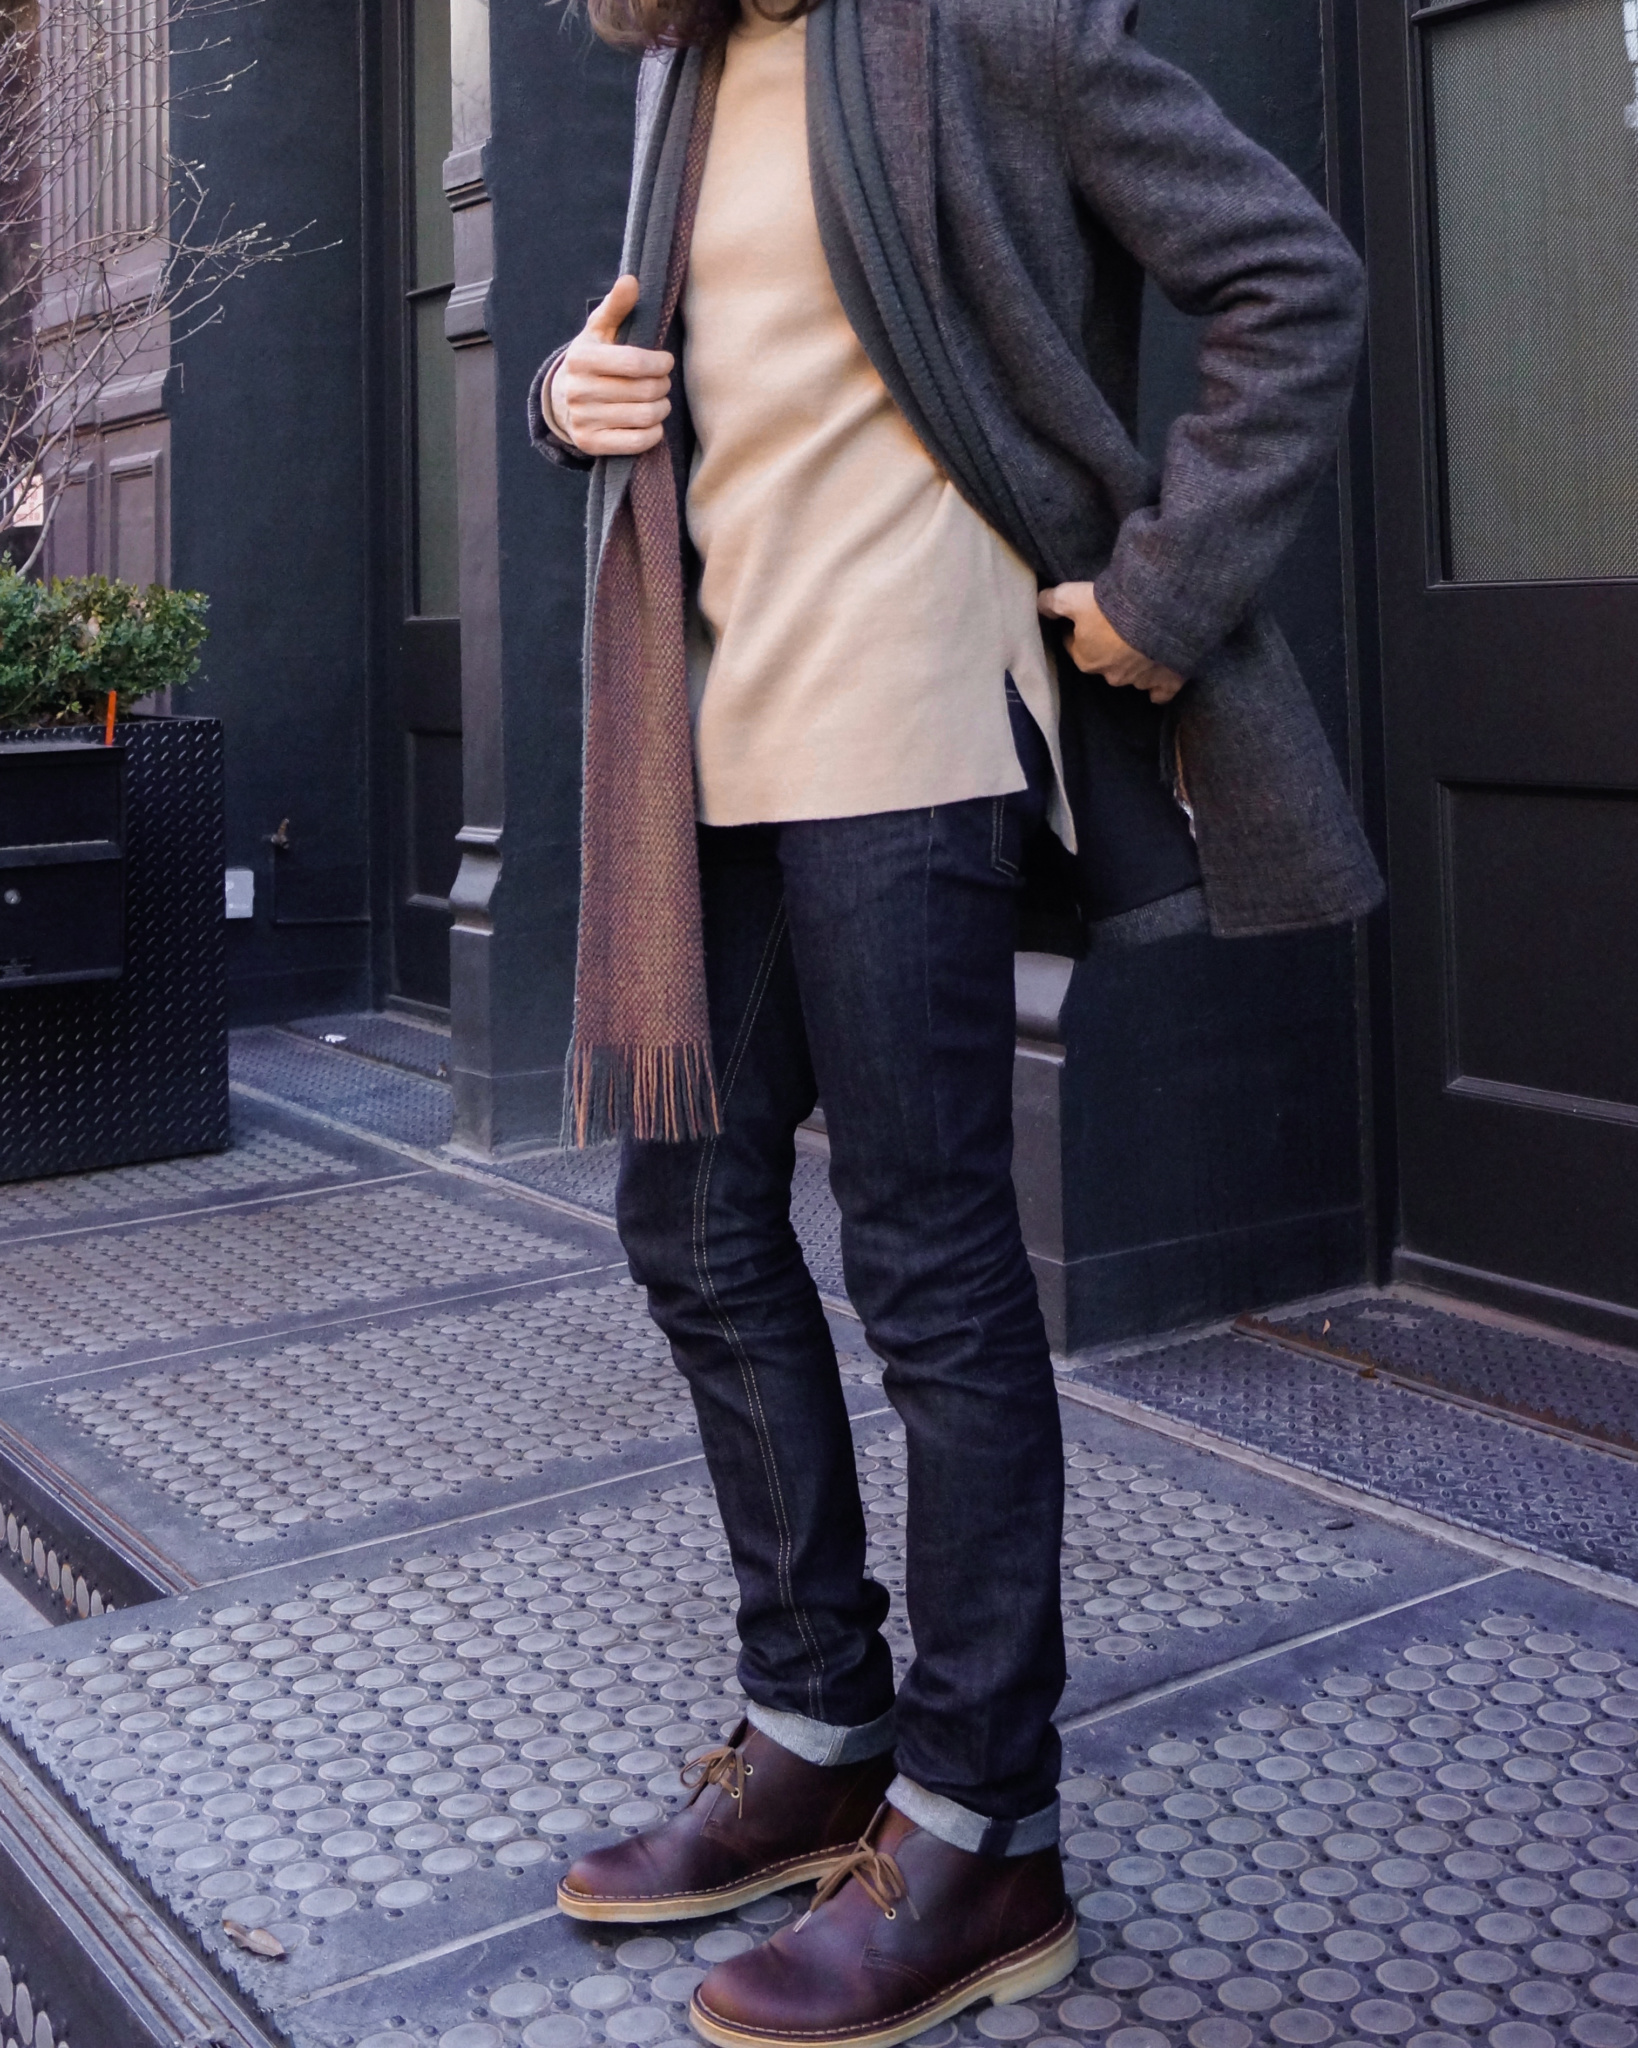 Winter Grays & Nudes - Men's Fashion - Style - Topman Sweater / Topshop - Stone Turtle Neck Split Hem Slim Fit Sweater - Clarks Desert Boot from Clarks Originals Collection - Shoe Shopping - Beeswax & Leather - TheKillerLook.com - The Killer Look